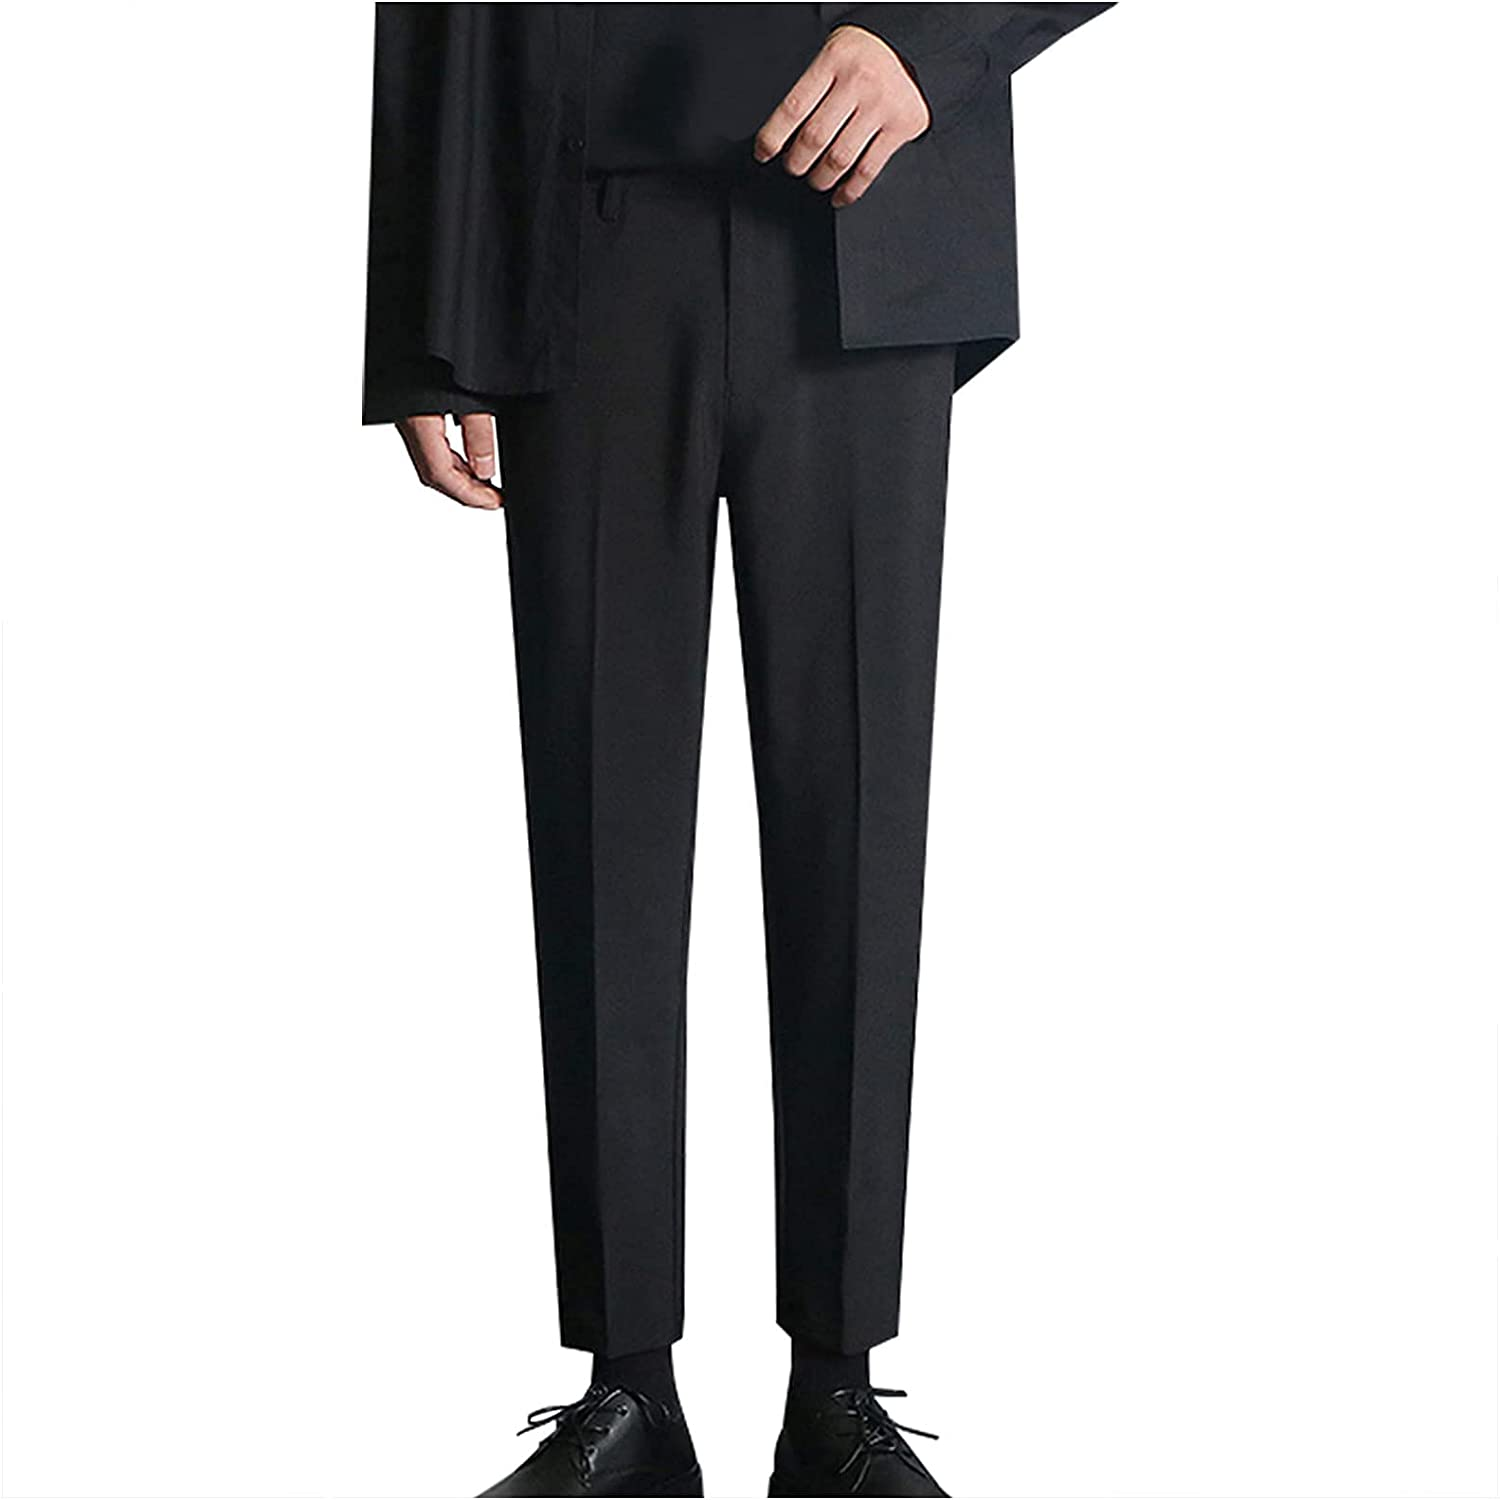 Dress Pants for Men Slim Fit Men's Classic Casual Pant Stain Shield Stretch Straight Fit Flat Front Dress Pant